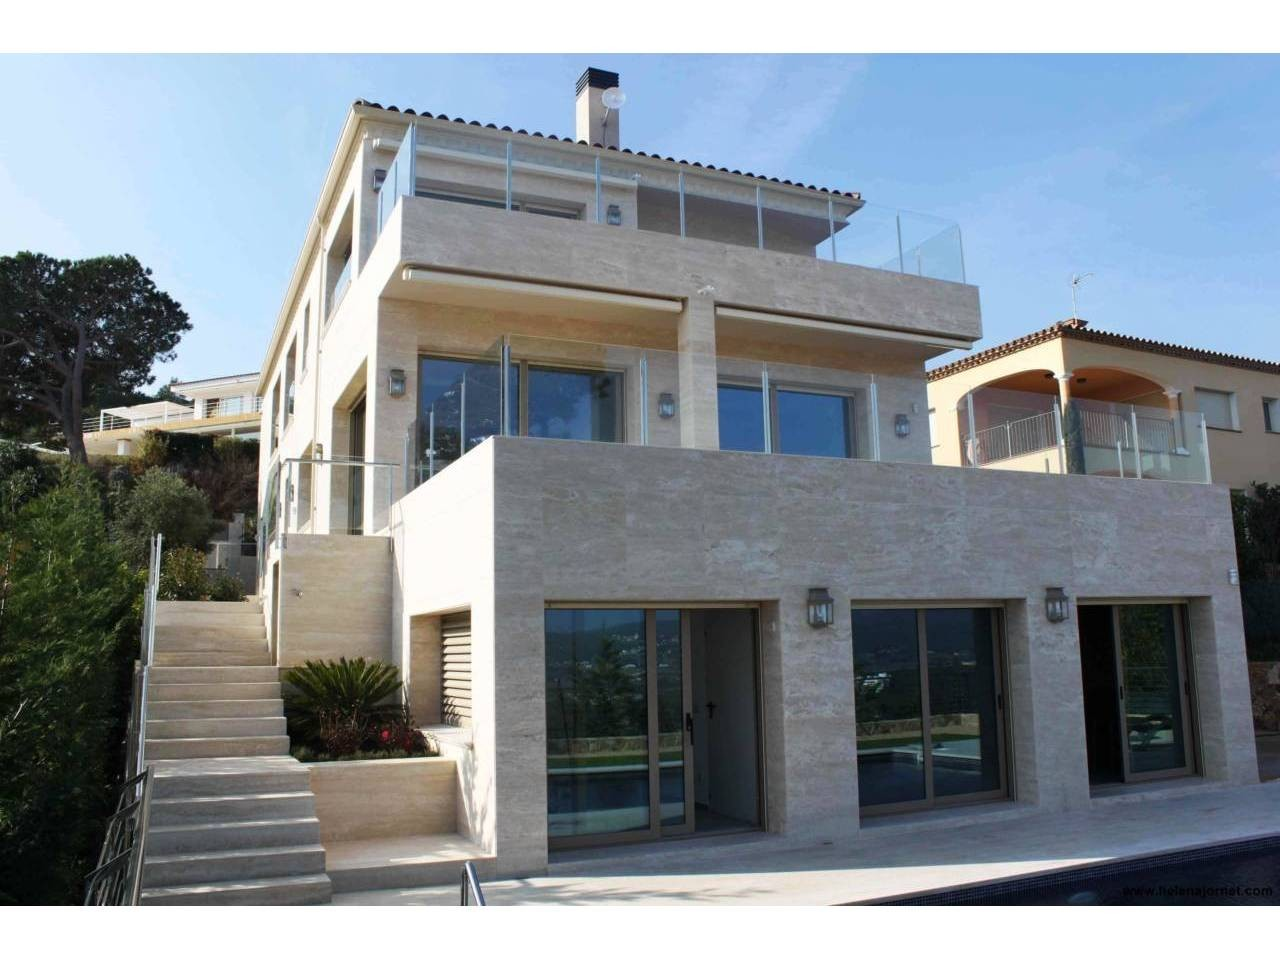 Wonderful luxury house with outdoor and indoor swimming pools and two large terraces with views - 020033